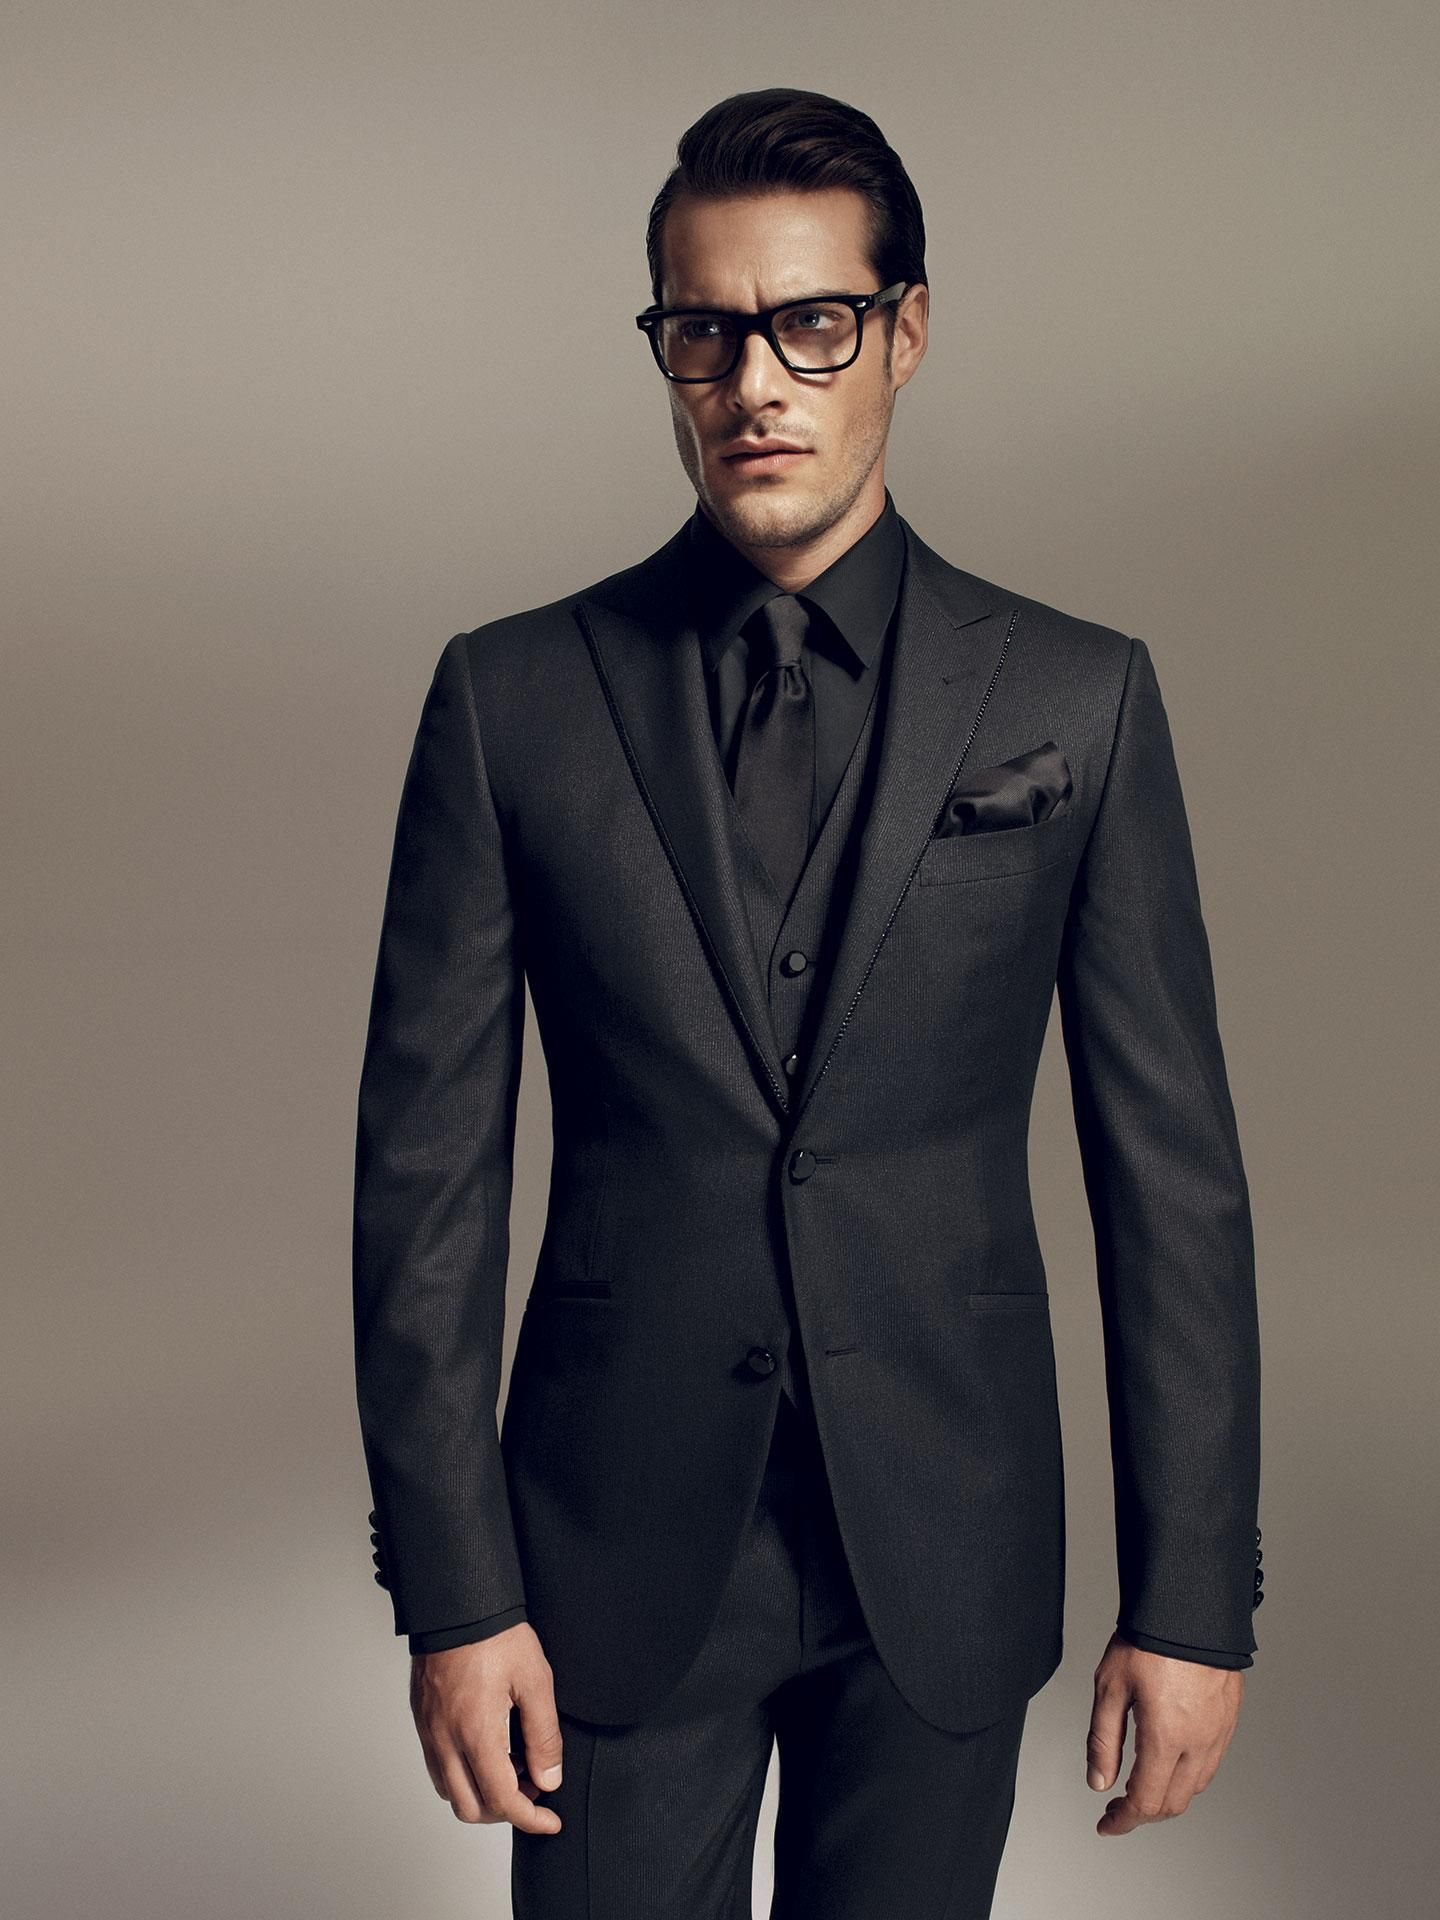 oooh tie and pocket square should be colorful! | dencio's ... Black Suit Styles